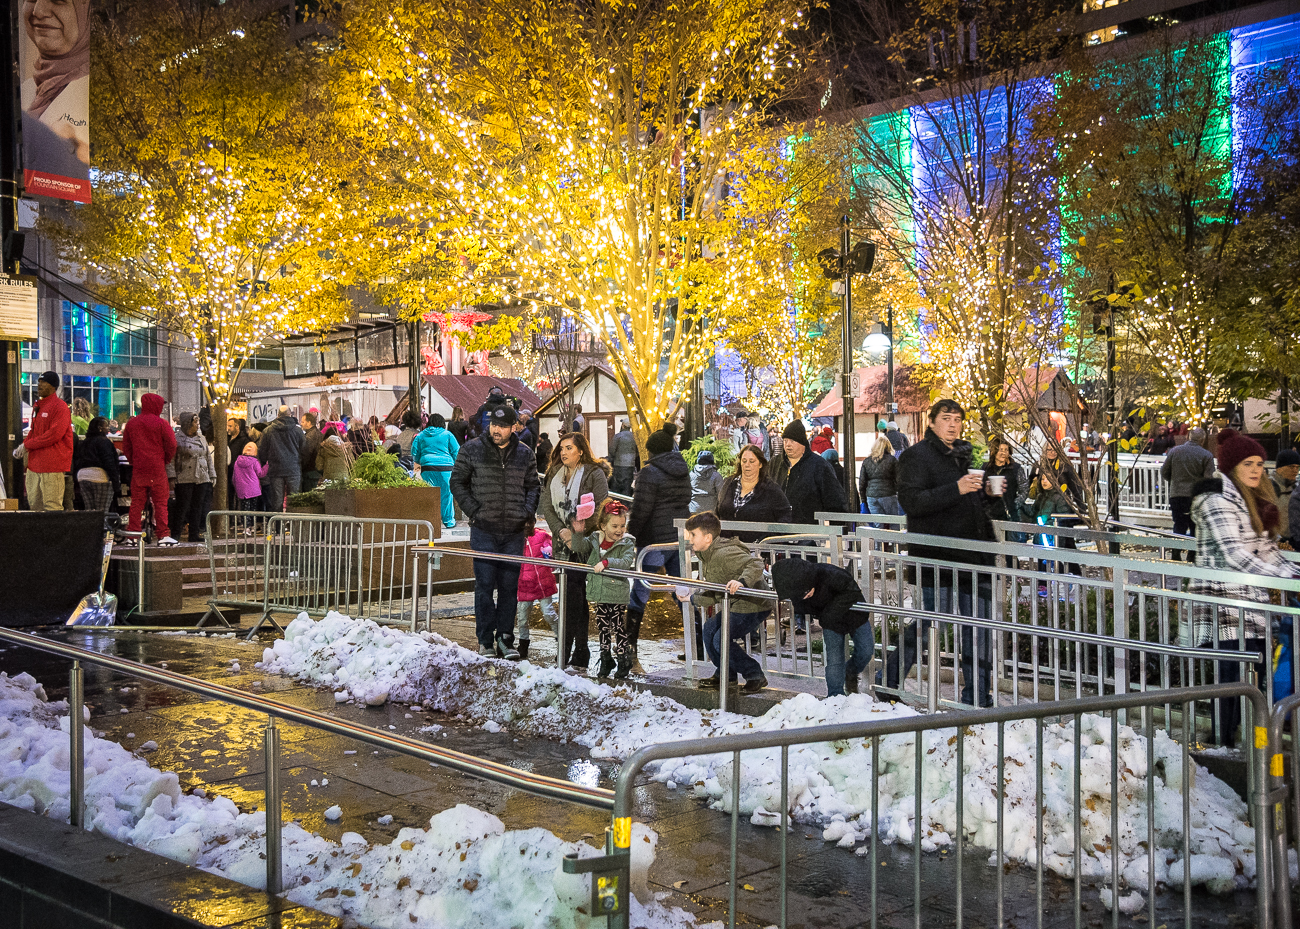 Macy's Light Up the Square was held on Friday, November 23, 2018. The 40-year-old, 55-foot Norway spruce was lit up with Christmas lights and topped with Macy's signature red star. Thousands of people gathered on the Square to witness the tree lighting and fireworks show immediately after. / Image: Phil Armstrong, Cincinnati Refined // Published: 11.24.18